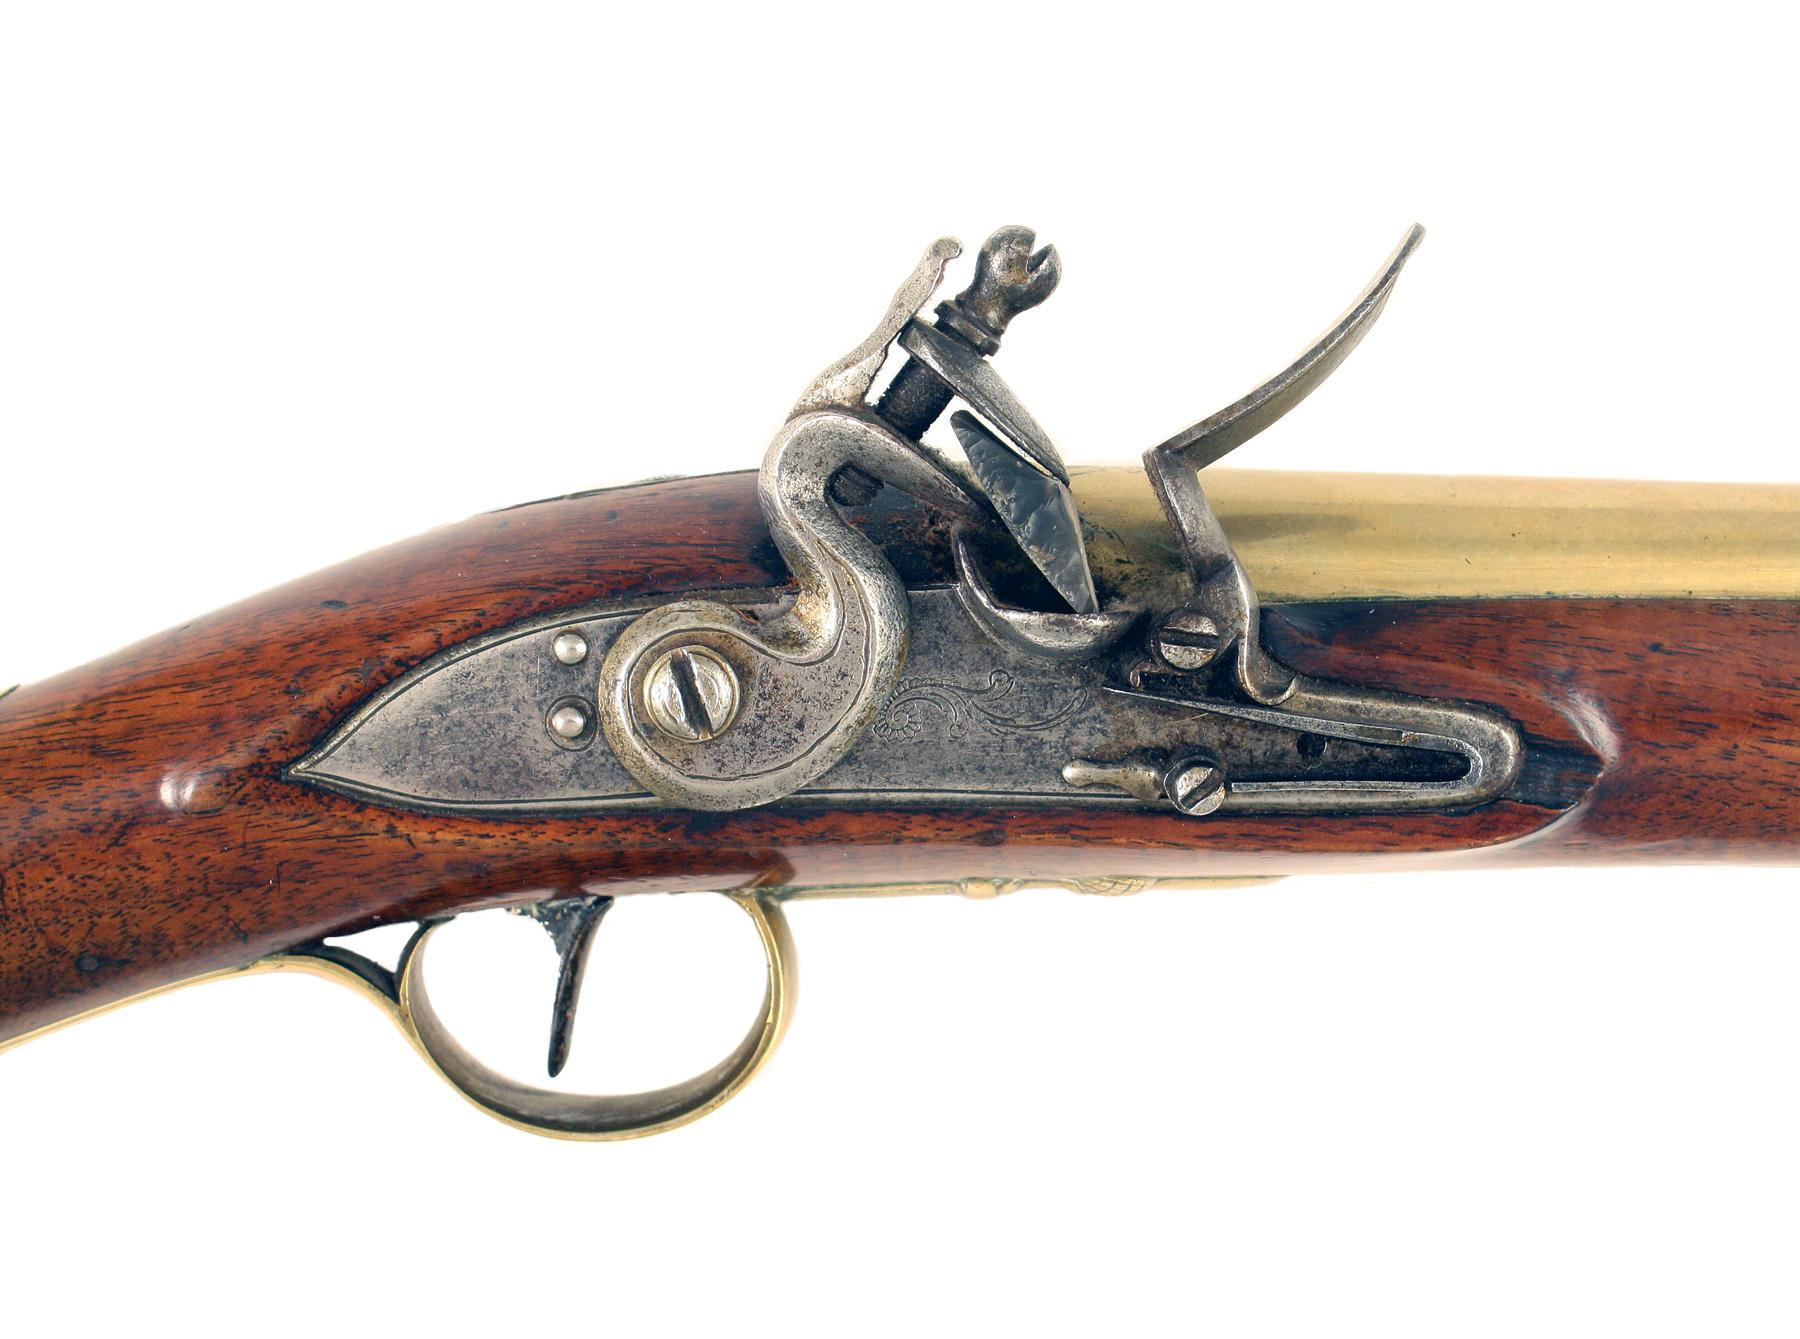 A Flintlock Blunderbuss